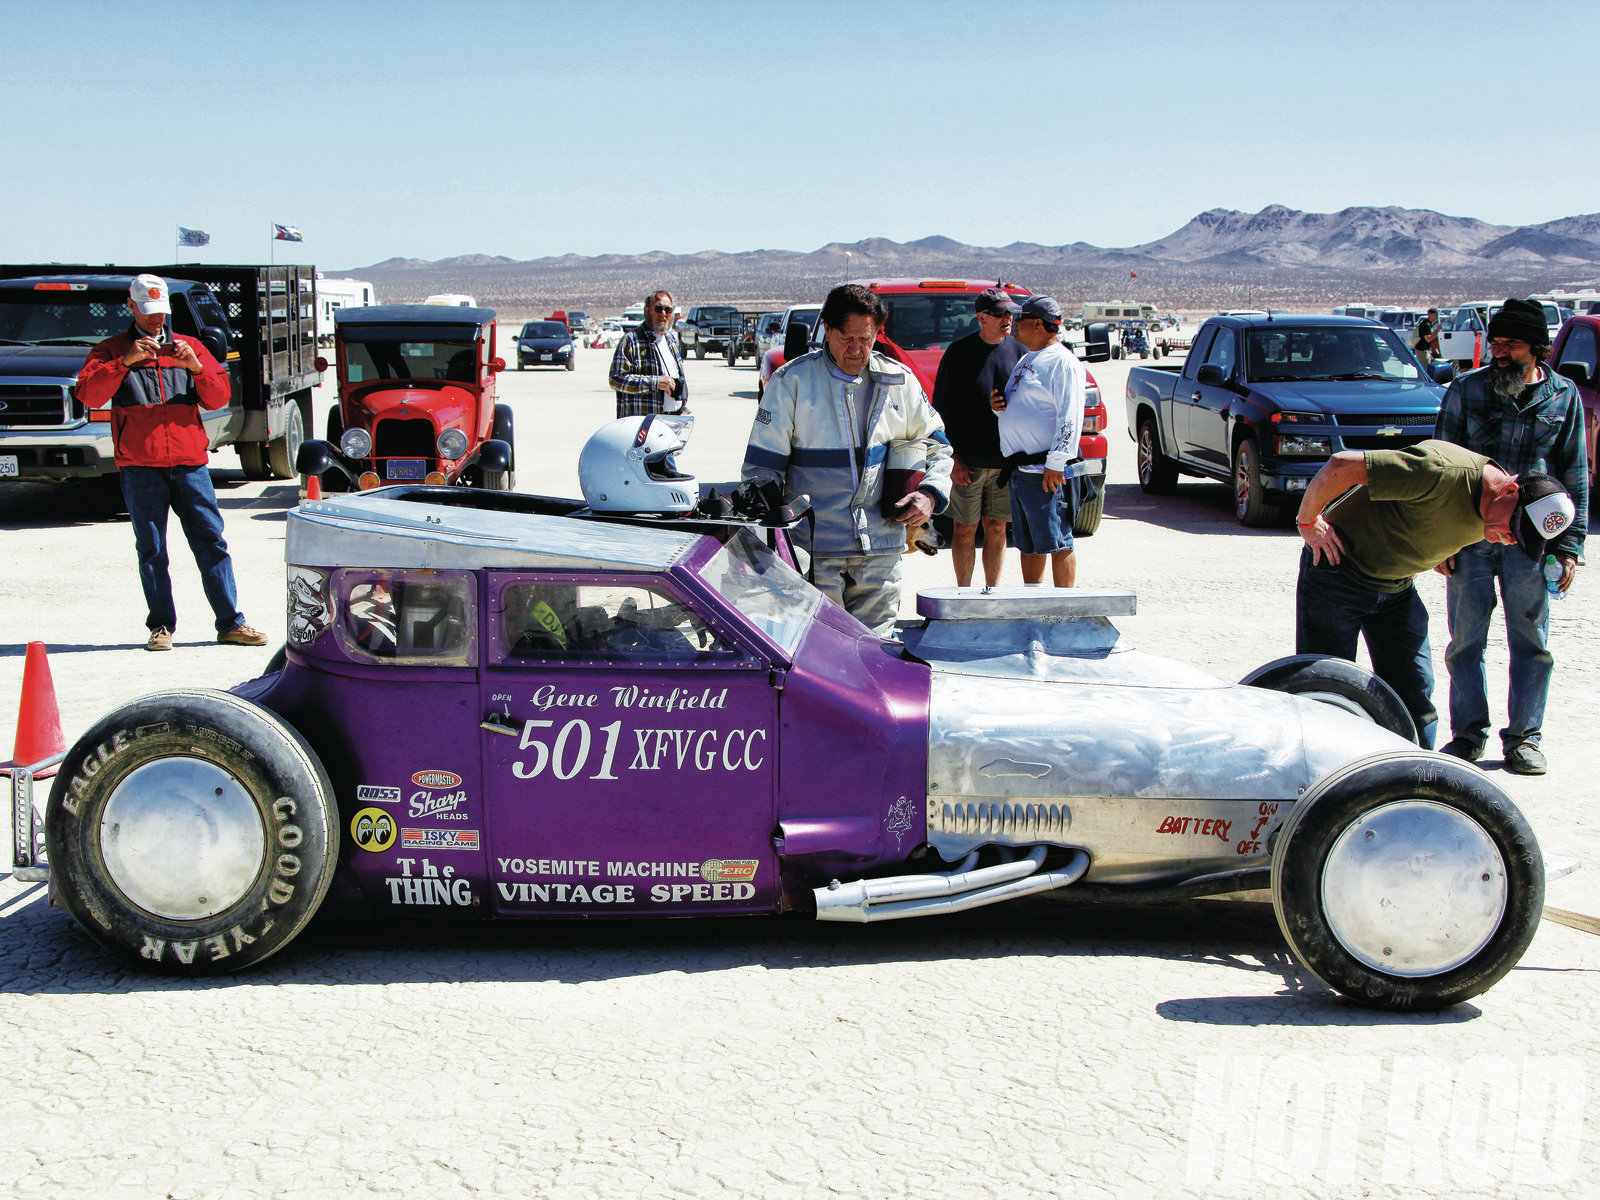 One of the regulars at El Mirage is well-known customizer and metal man Gene Winfield (in the driver suit) in a flathead-Ford-powered tribute to his The Thing Model T racer from the '50s.